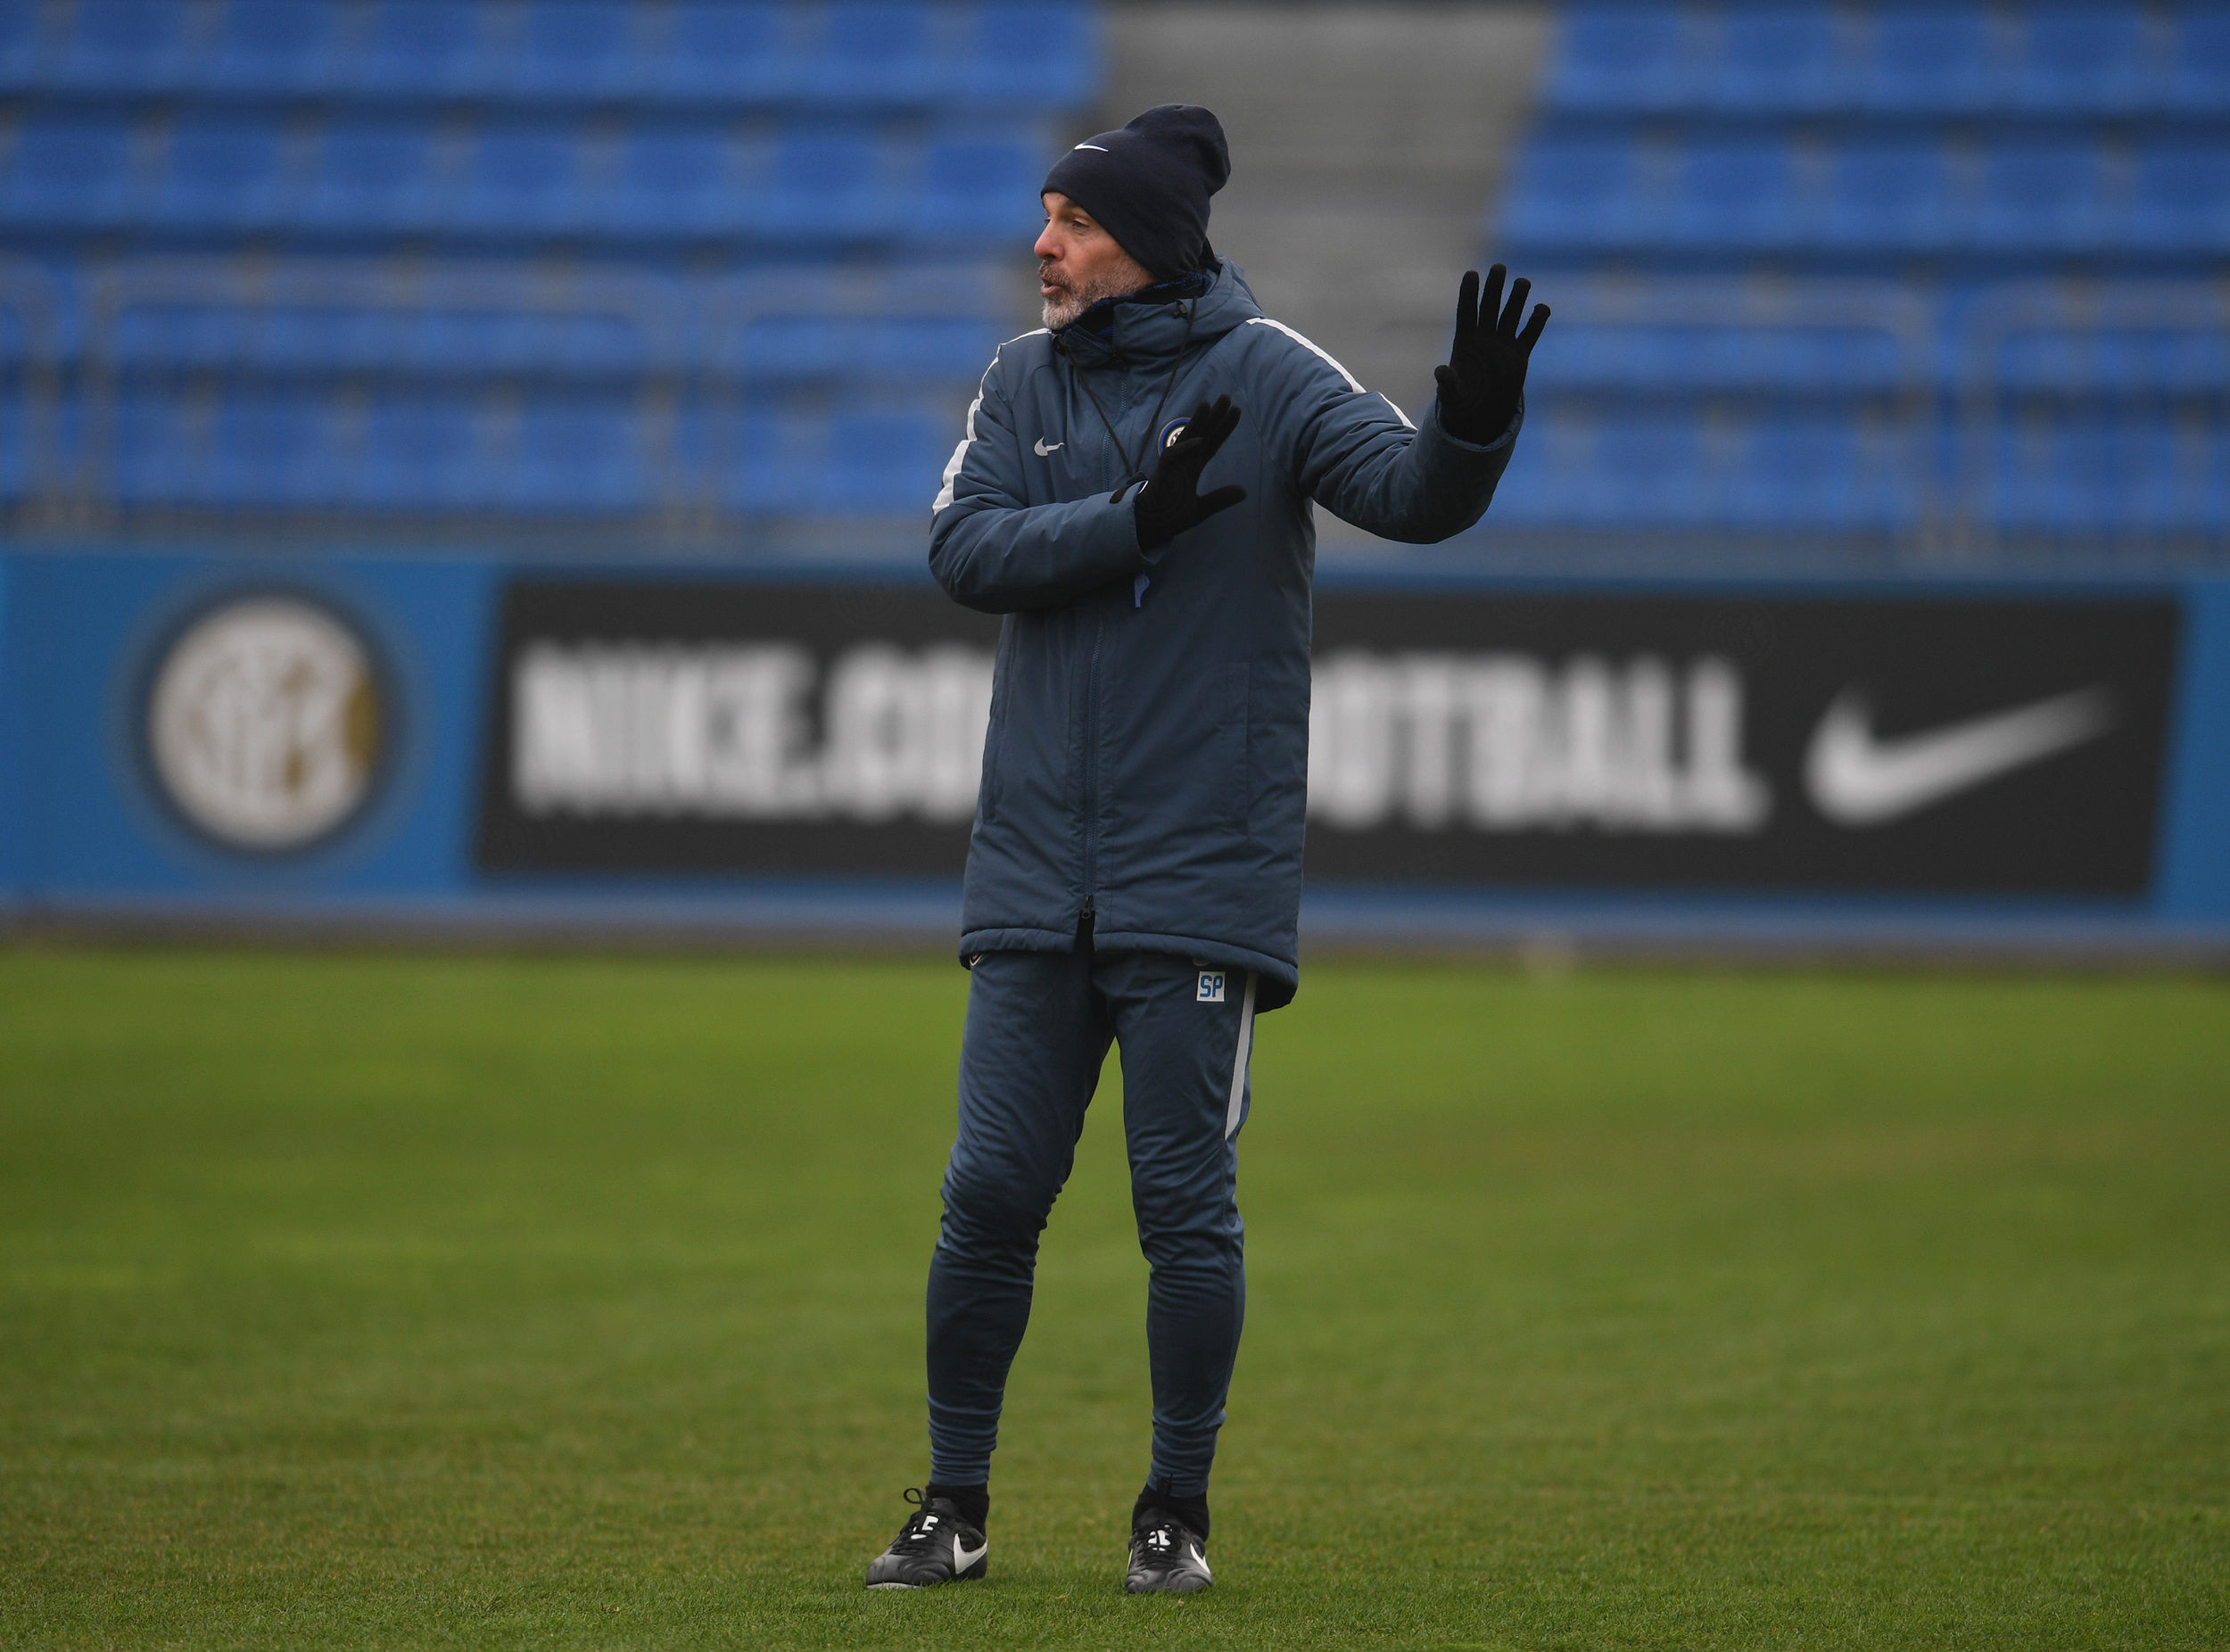 Afternoon training before Empoli encounter